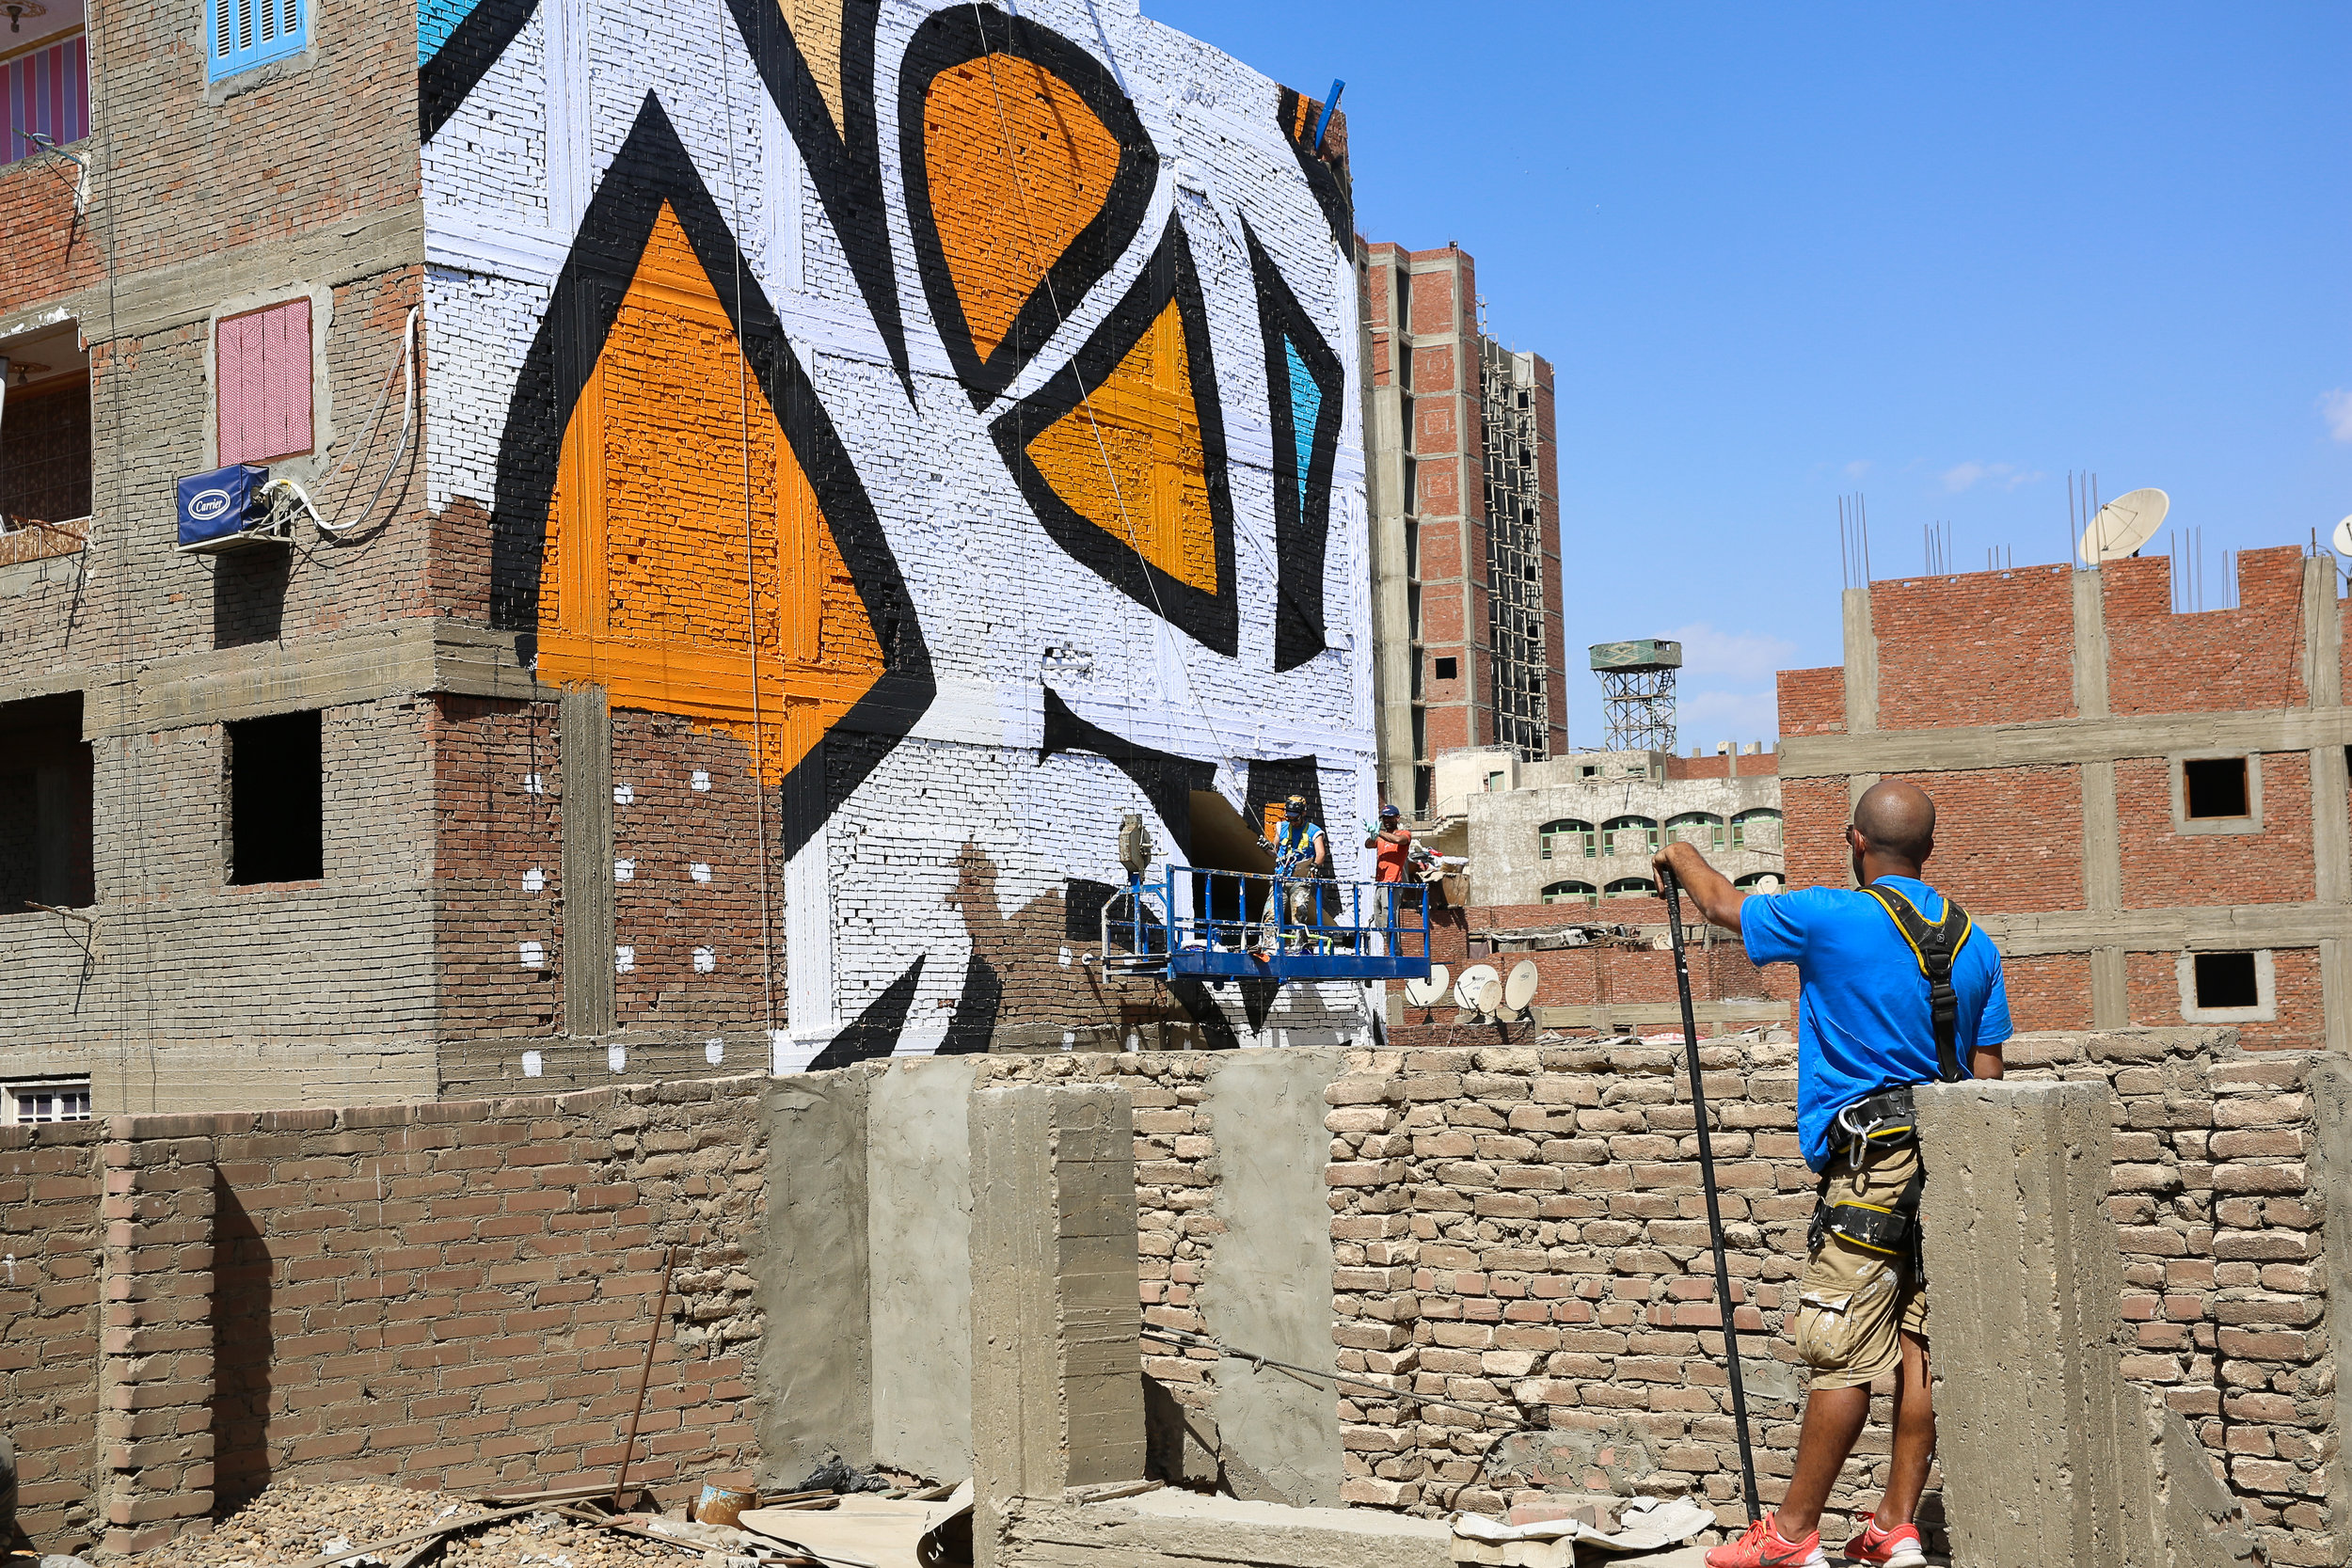 eL Seed, seen here in the foreground working on his most ambitious project to date, the mural in Cairo. Courtesy of eL Seed Studio.